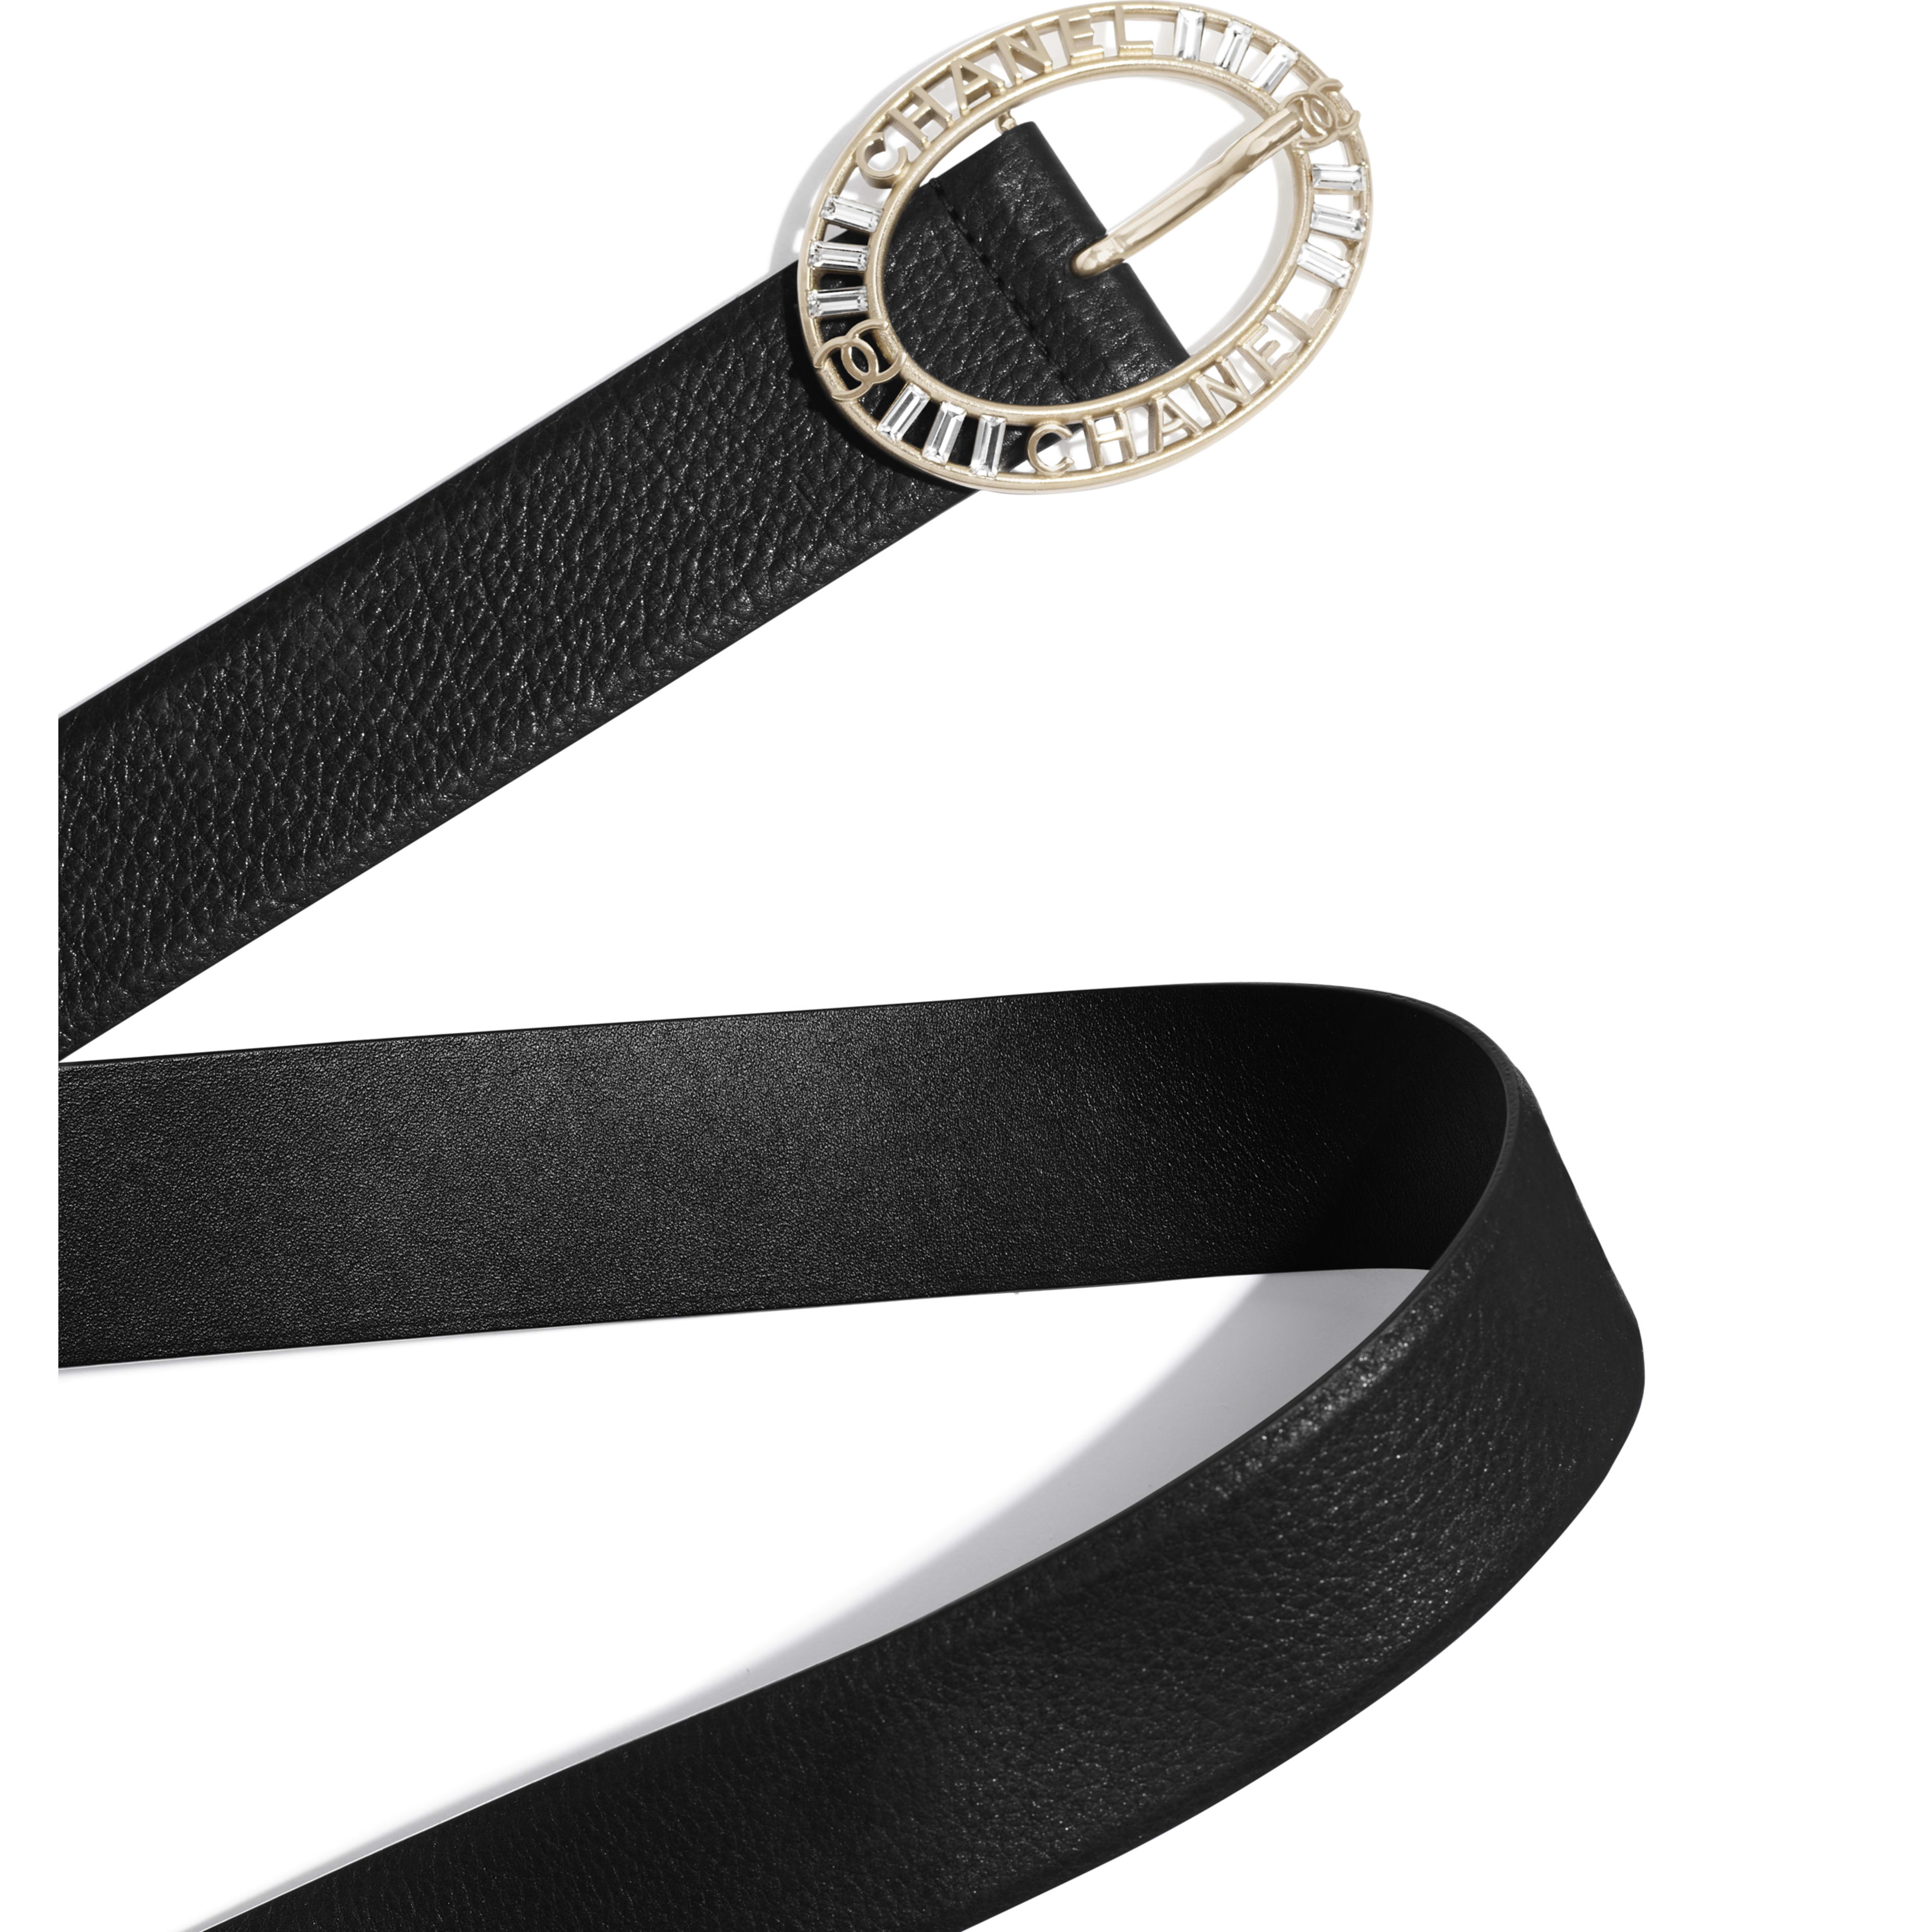 Belt - Black - Calfskin, Gold-Tone Metal & Strass - Alternative view - see full sized version